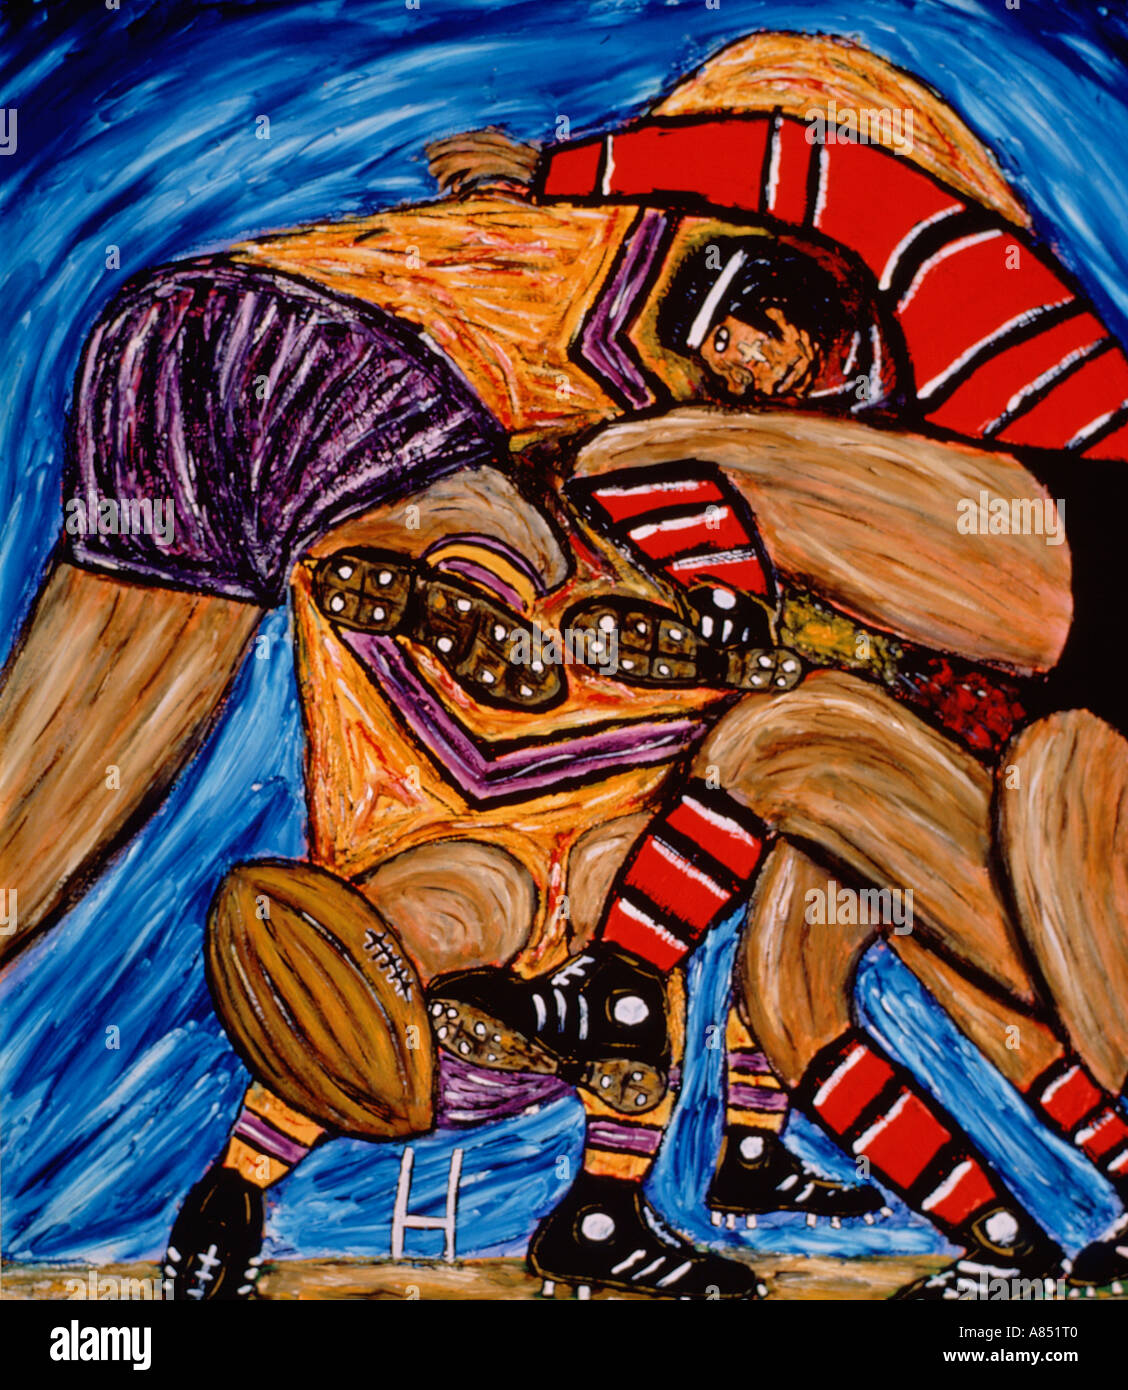 Painting of men in Rugby Football Scrum. - Stock Image